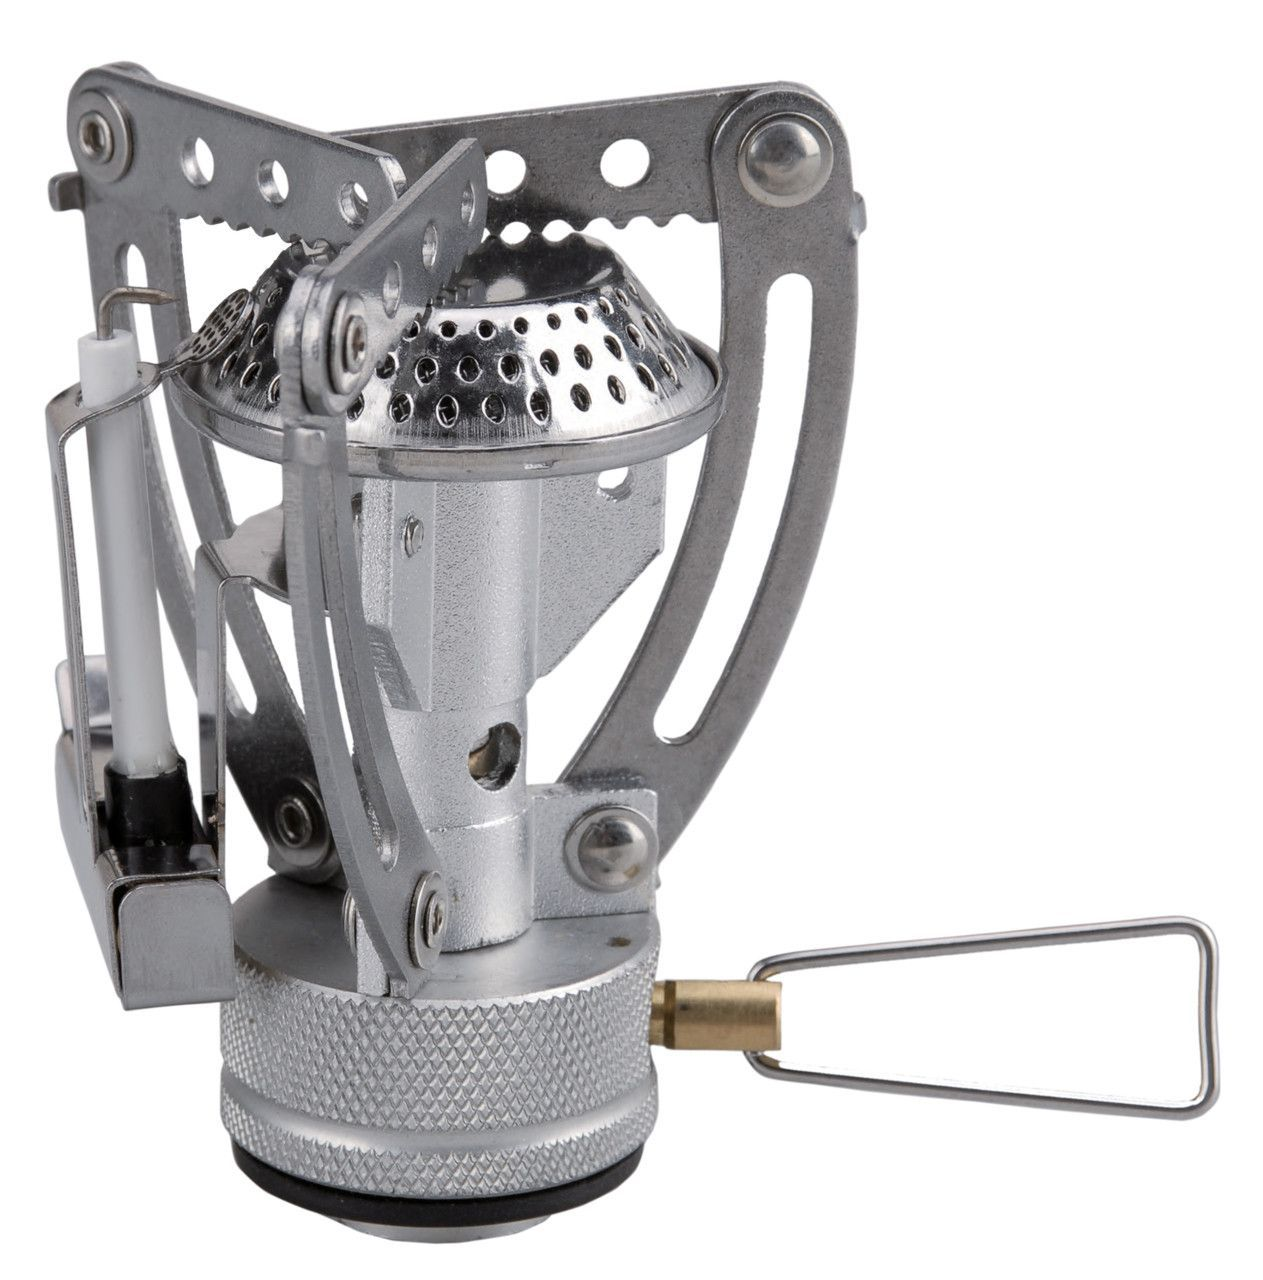 Firebird Stove by Ace Camp Camping stove, Gas stove, Stove